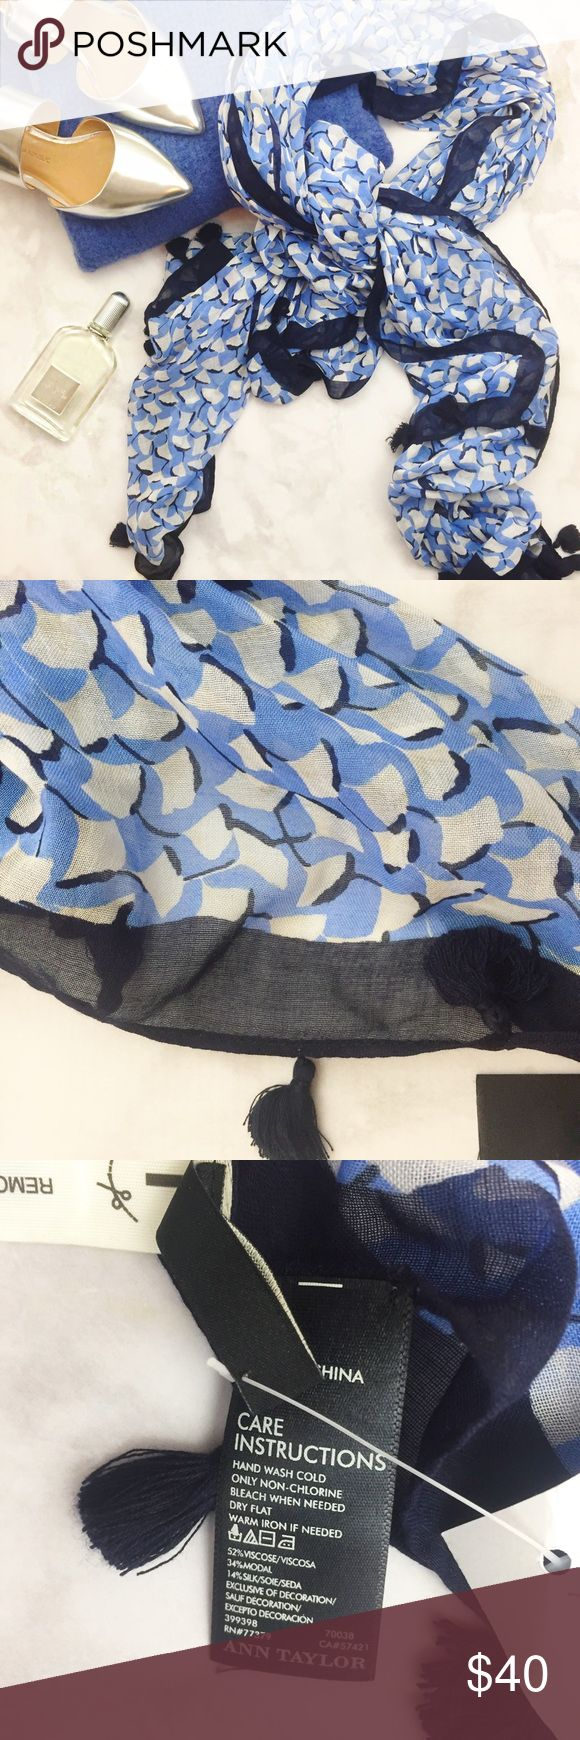 Leaf Print Scarf Large blue and white scarf in a leaf print and tiny tassels. NWT 07141607 Ann Taylor Accessories Scarves & Wraps